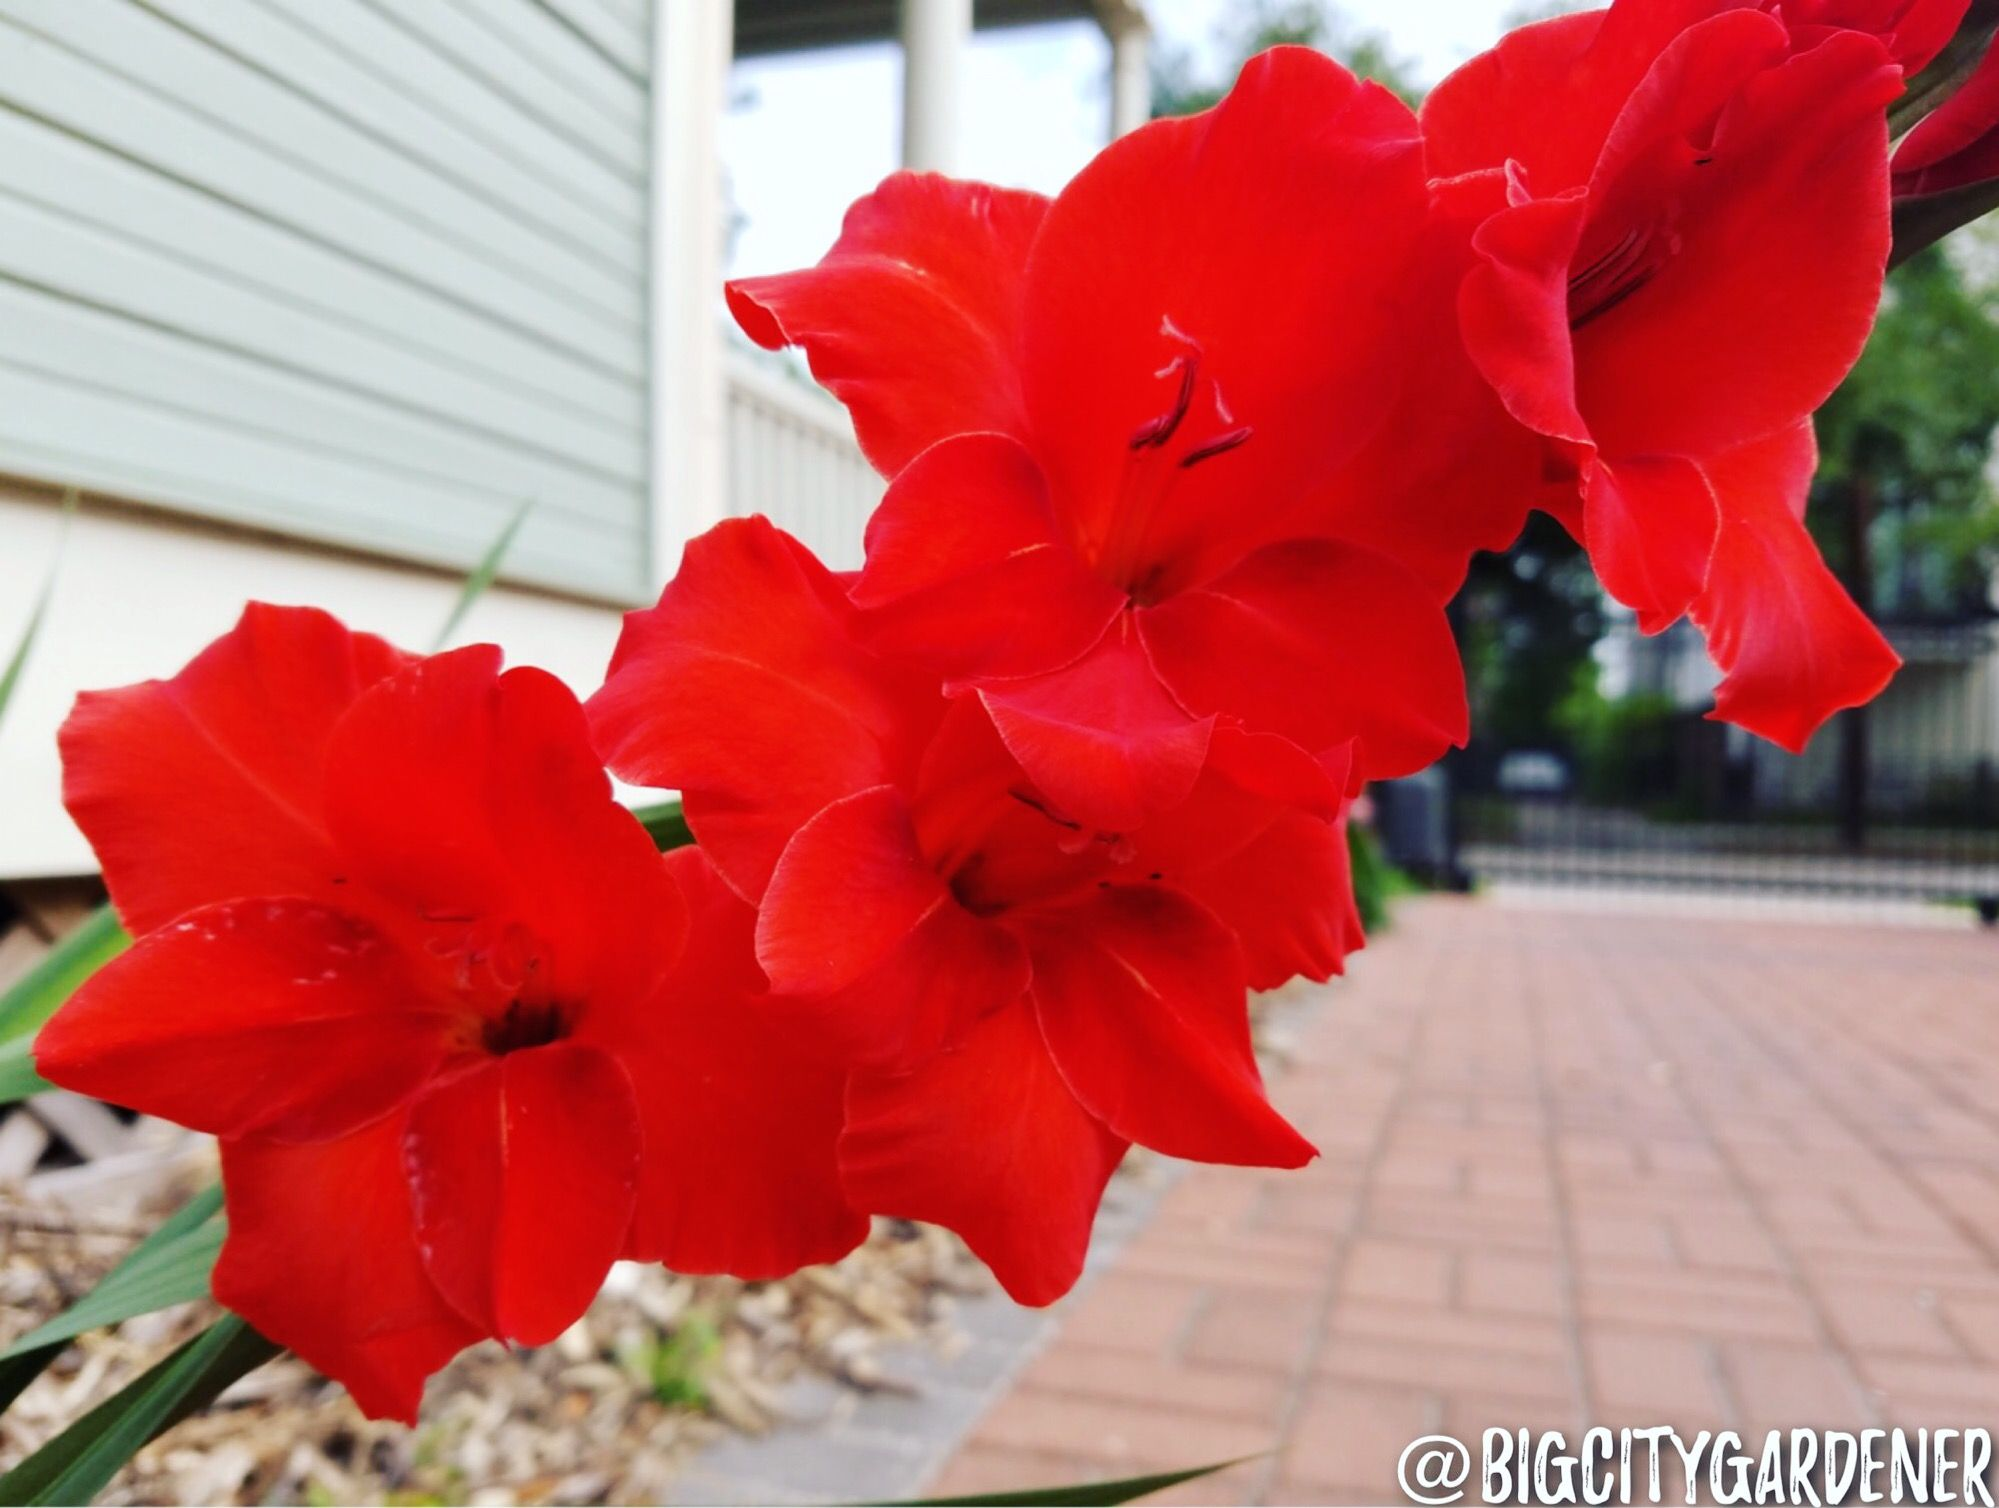 Gladiolus sometimes referred to as a sword lily derived